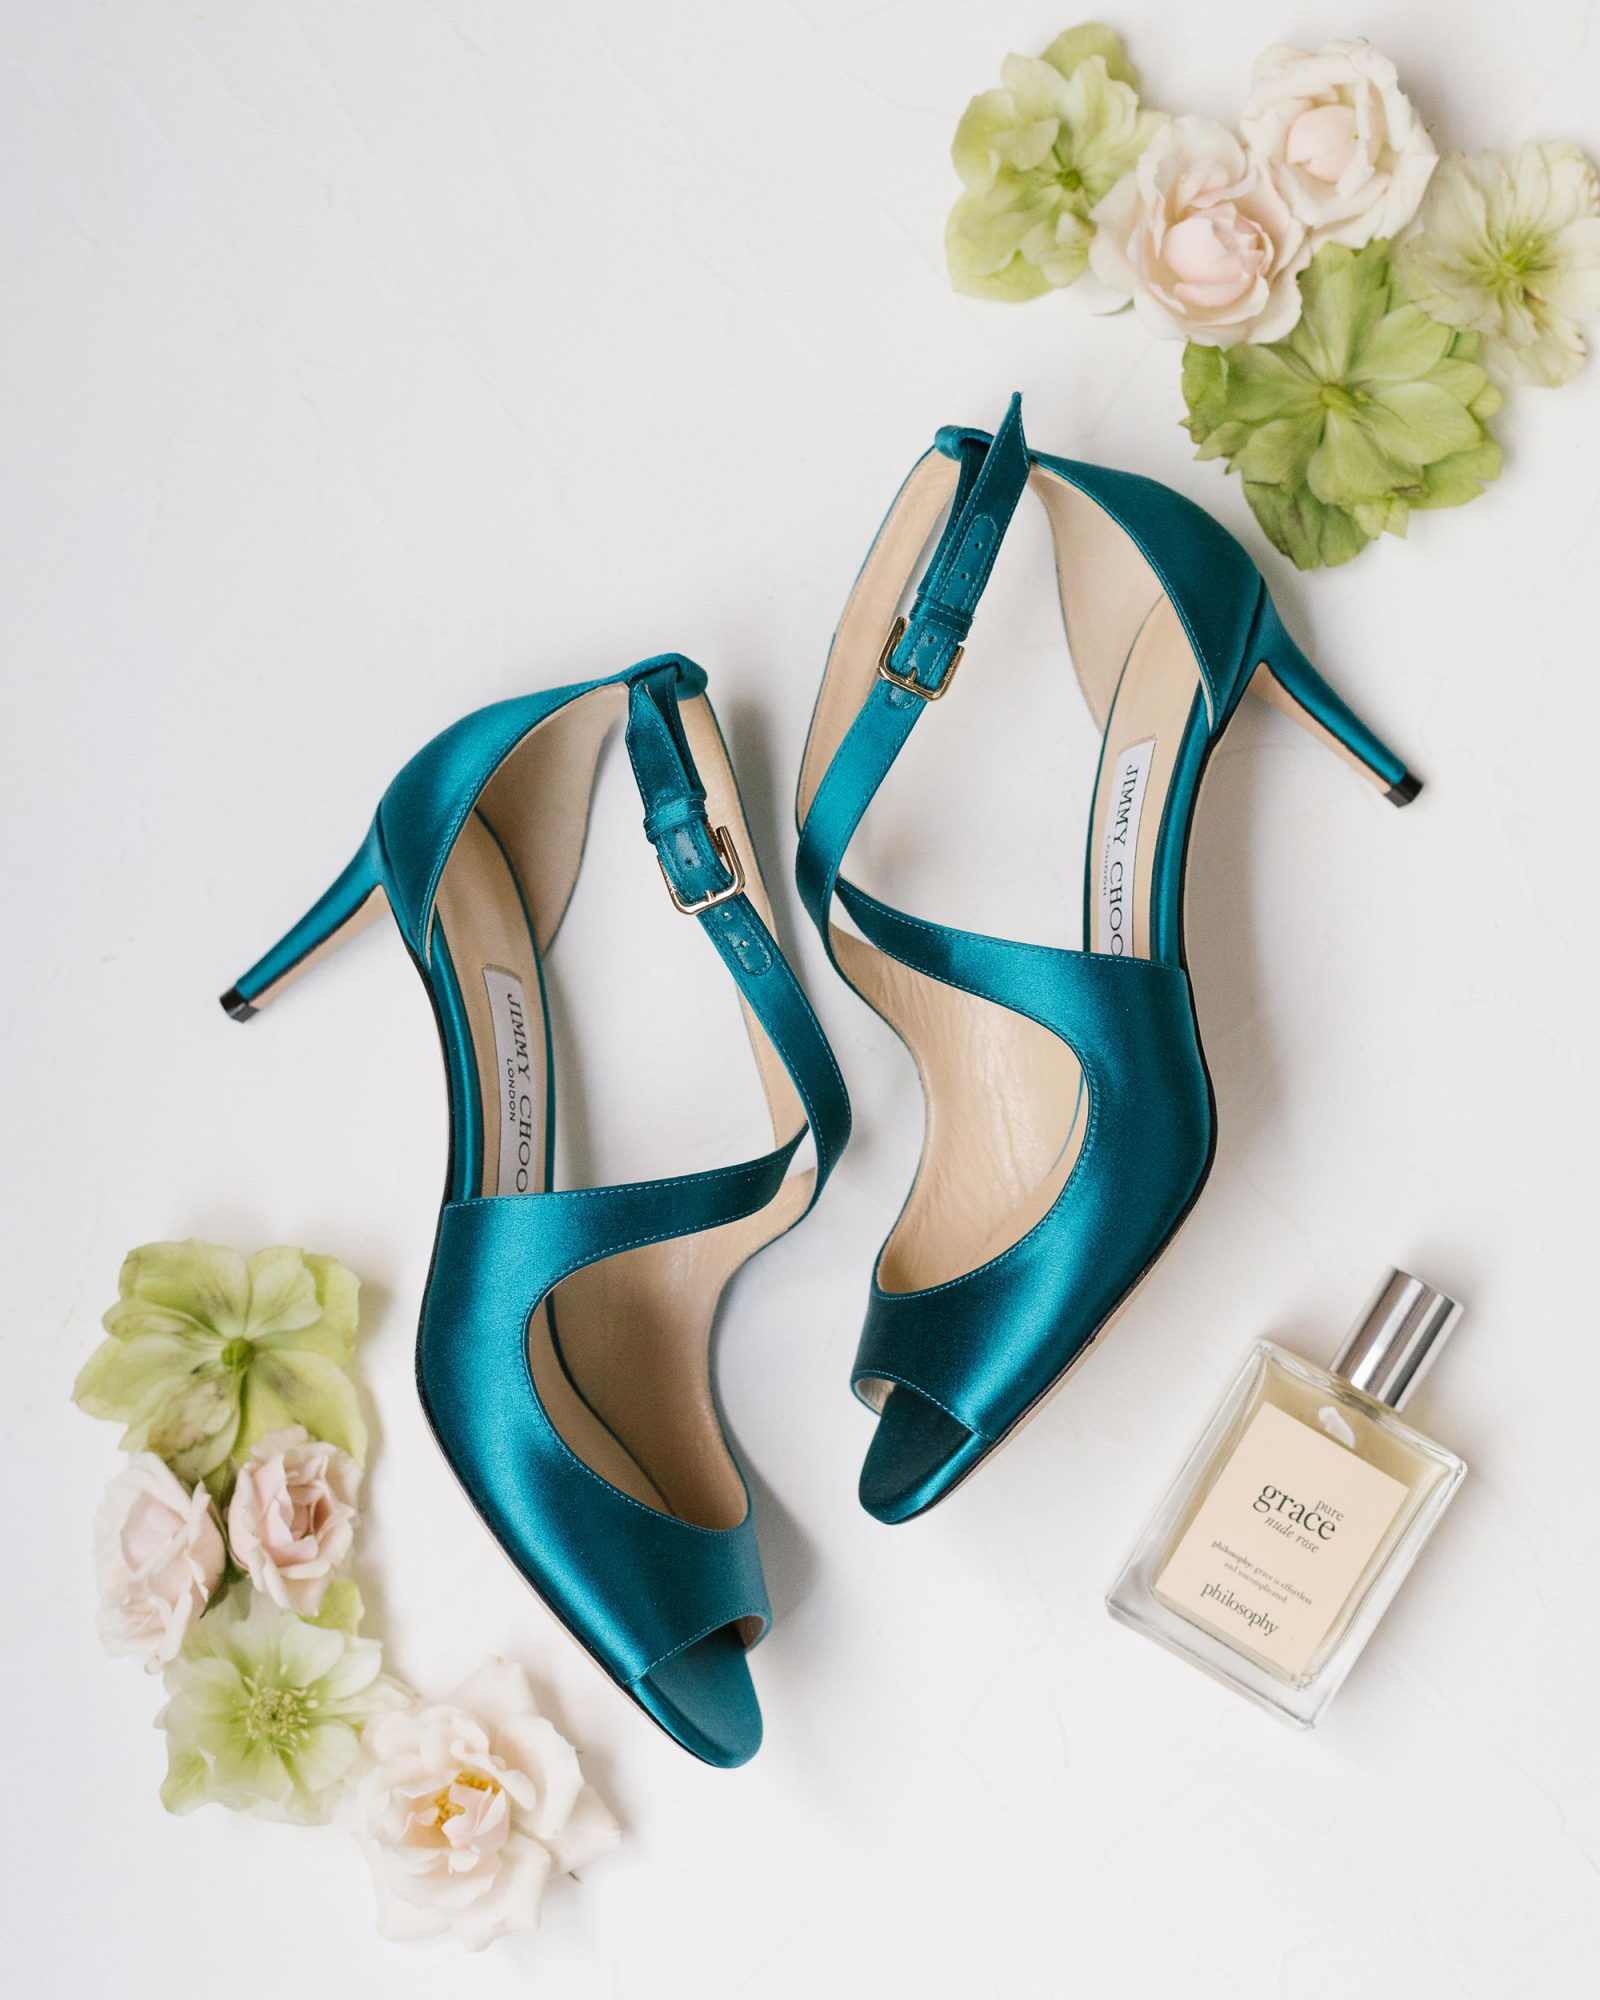 shelana kevin wedding bride teal heels surrounded by flowers and a fragrance bottle